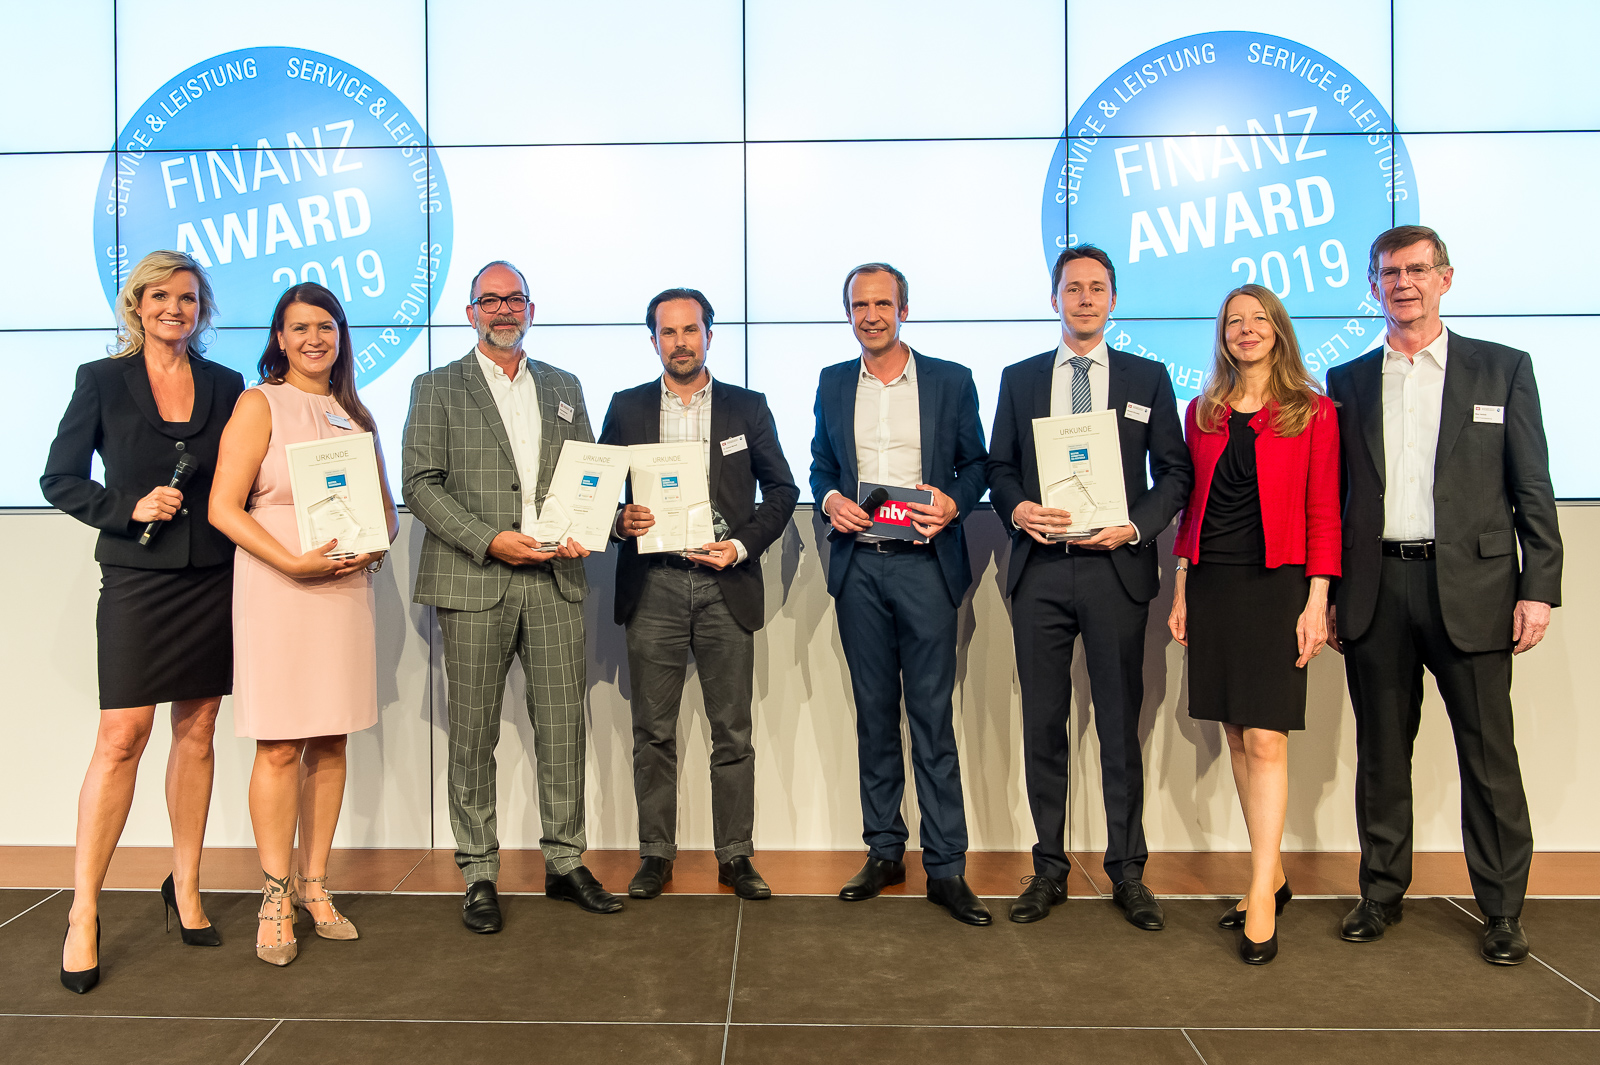 Winners of the Finanz Awards 2019 issued by the DISQ